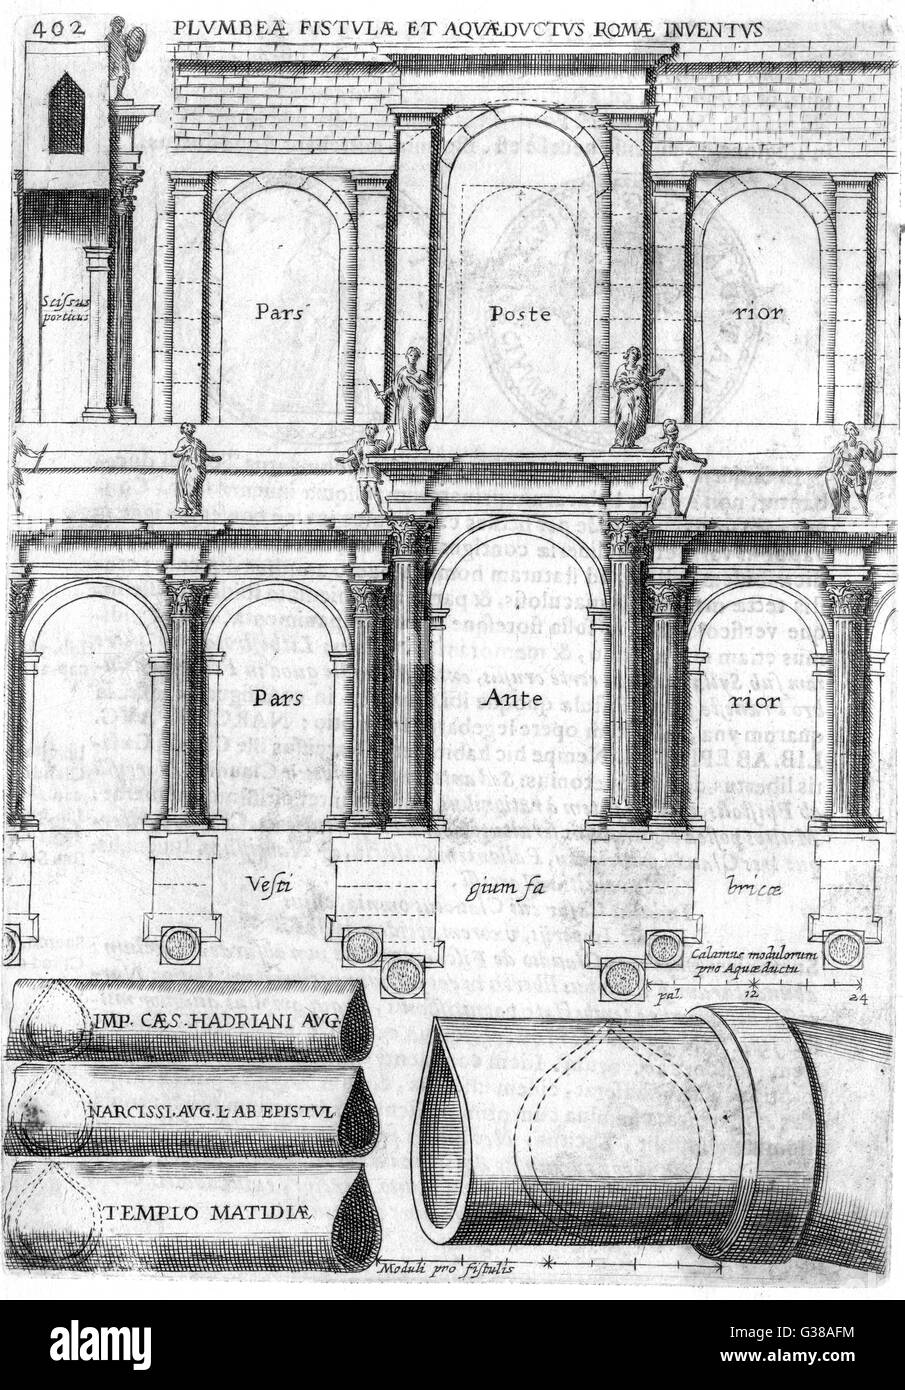 Detailed plans of  Roman aqueducts.         Date: circa 1650 - Stock Image